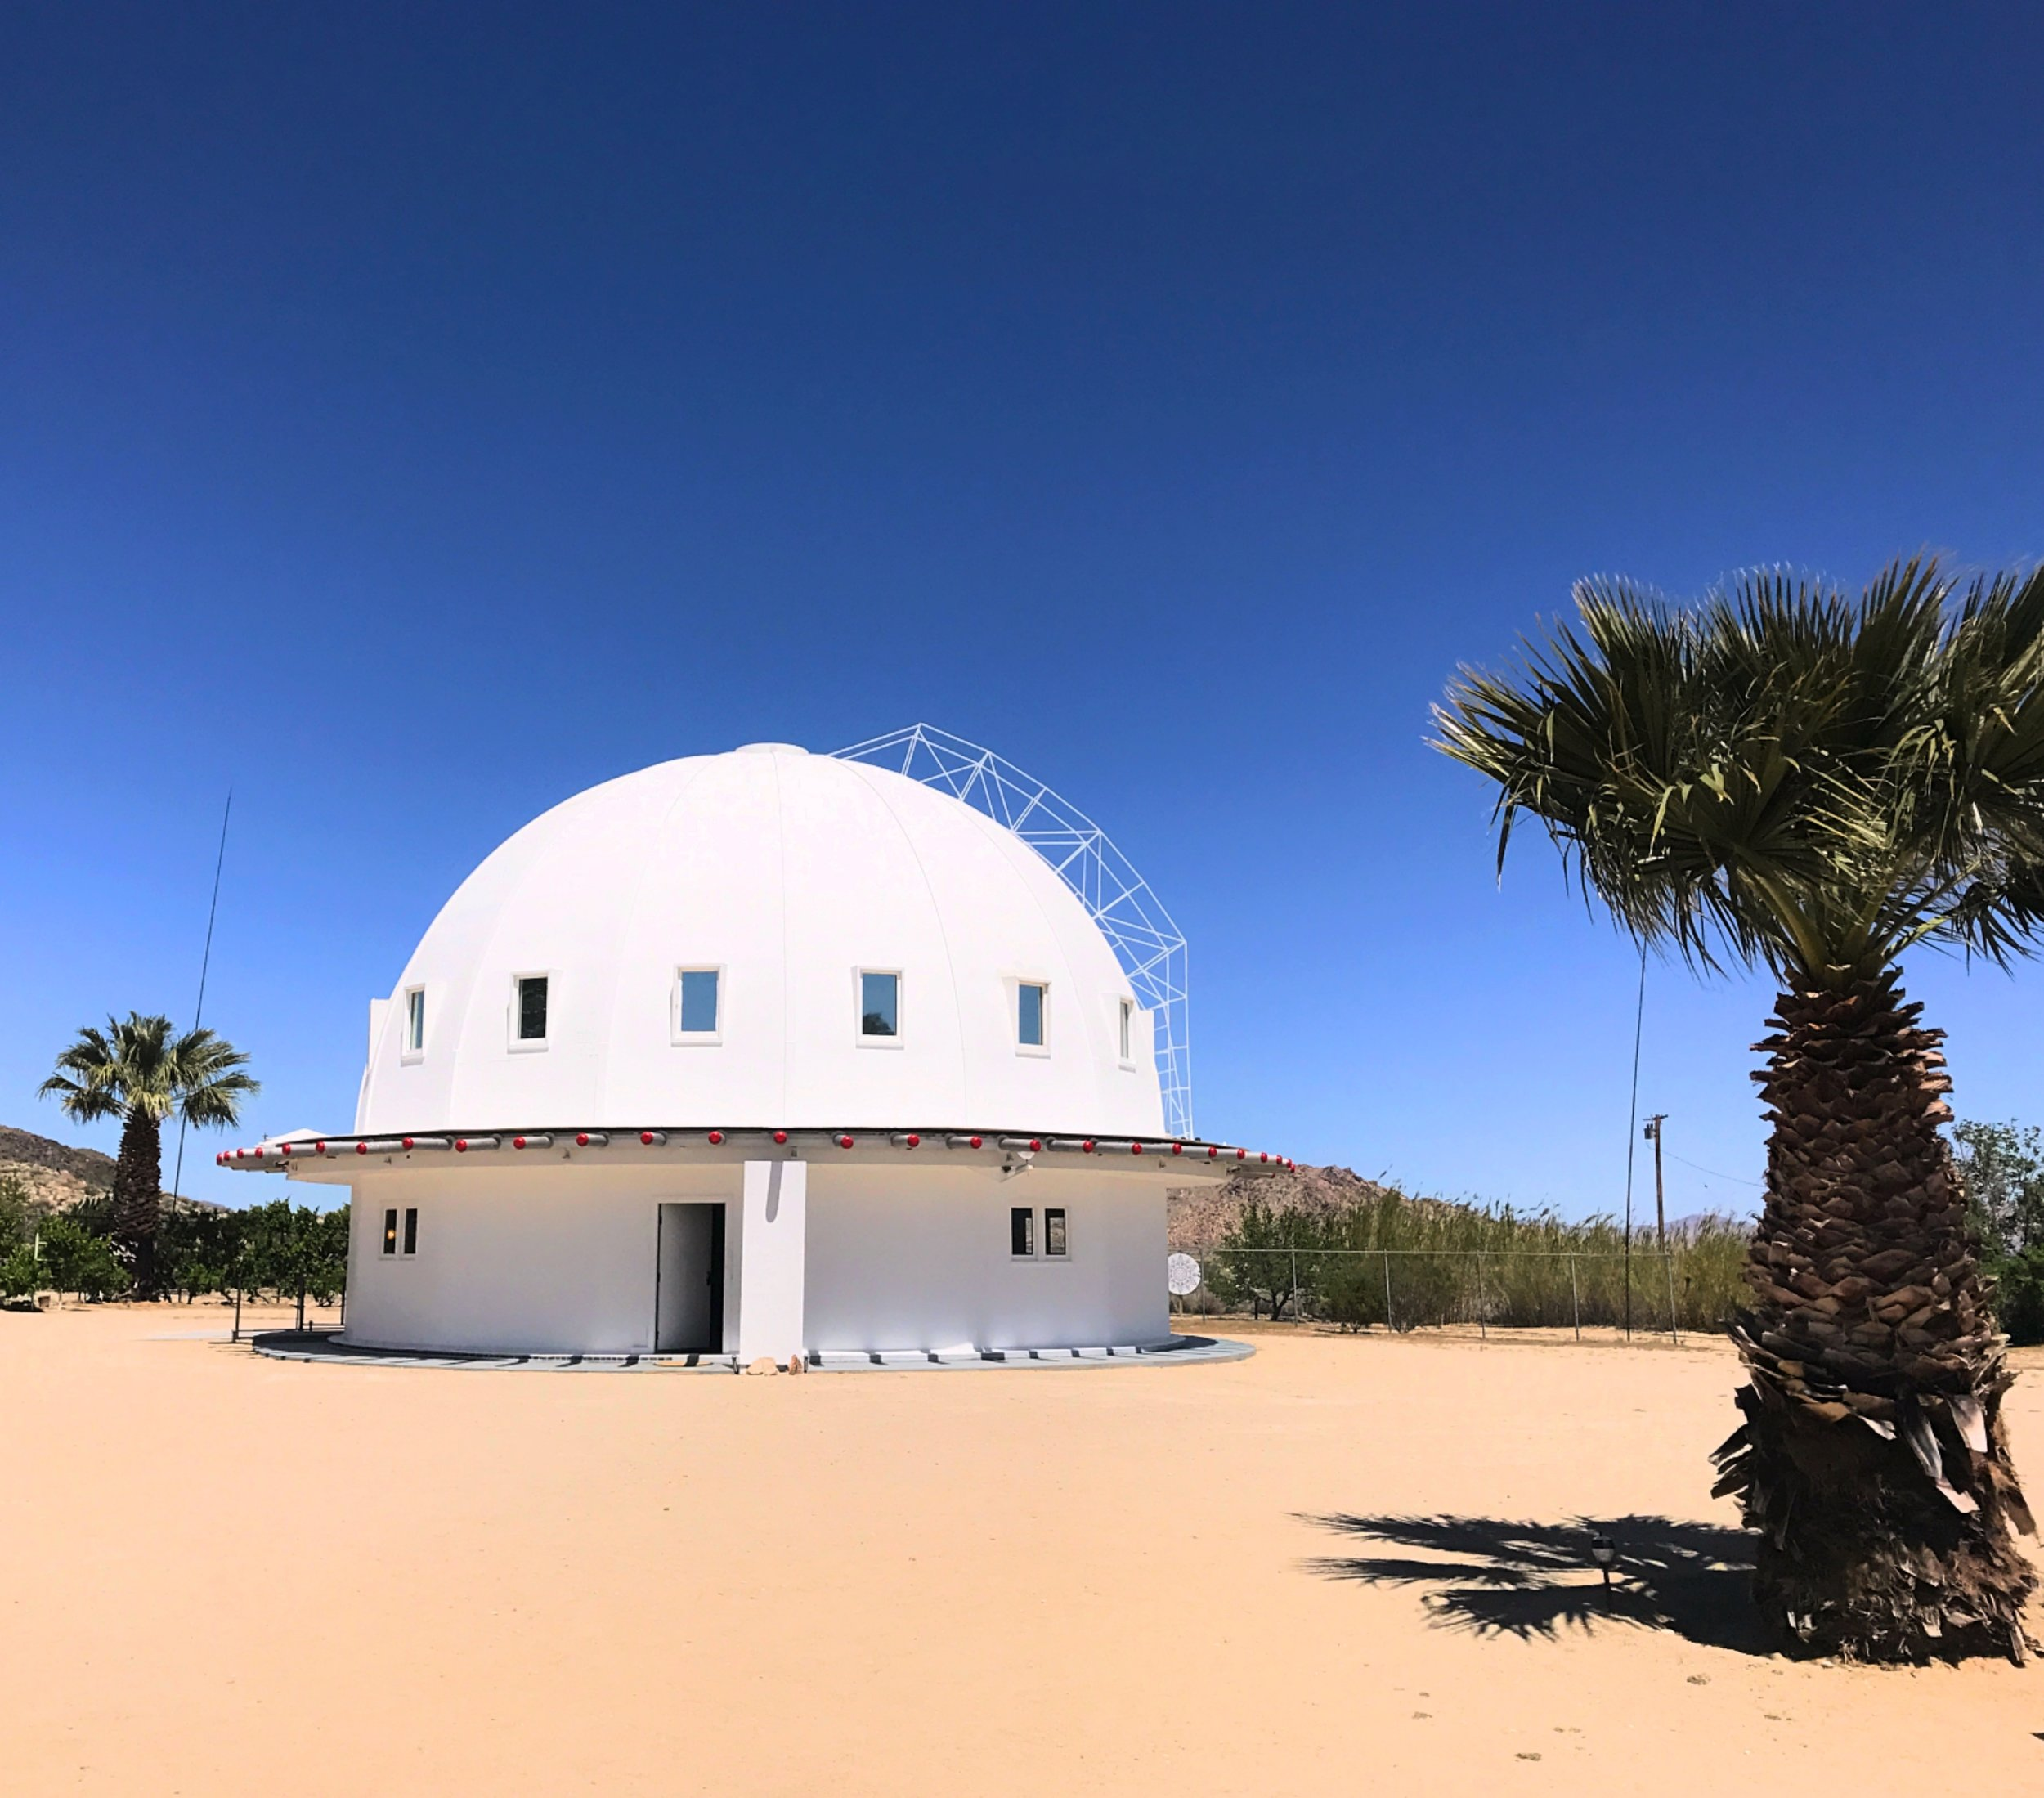 The magic structure of The Integratron